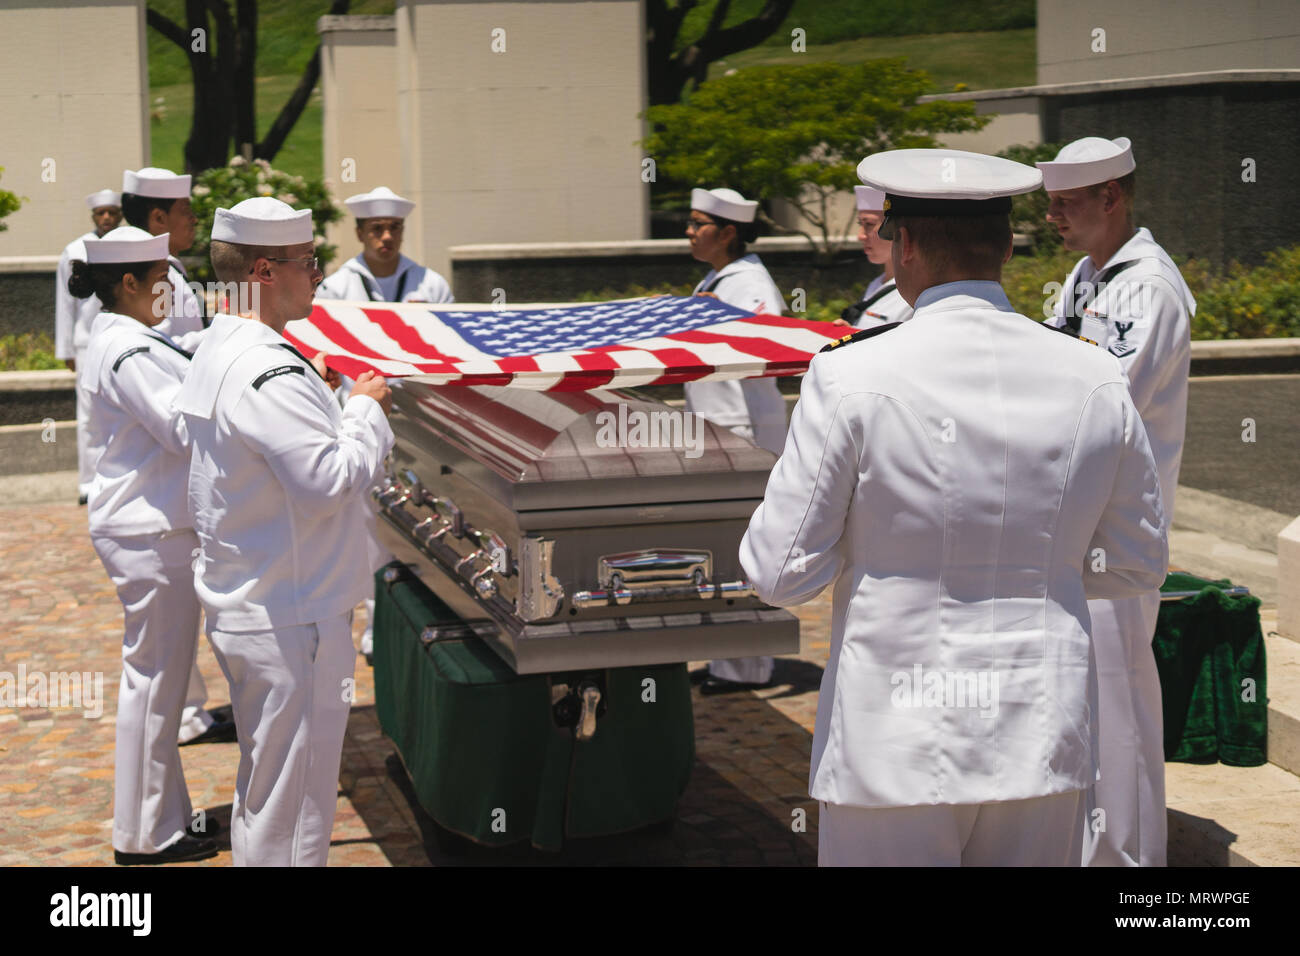 U.S. Navy Sailors drape the American flag over the casket. of U.S. Navy Seaman 1st Class Paul S. Raimond, of Converse, Louisiana, was laid to rest July 11, 2017 in the National Memorial Cemetery of the Pacific, in Honolulu, Hawaii. On Dec. 7, 1941, Raimond was assigned to the USS Oklahoma (BB-37), which was moored at Ford Island, Pearl Harbor, when the ship was attacked by Japanese aircraft. The attack on the ship resulted in the deaths of 429 crewmen, including Raimond. Raimond was recently identified through DNA analysis and returned to his family for burial with full military honors. (U.S.  - Stock Image